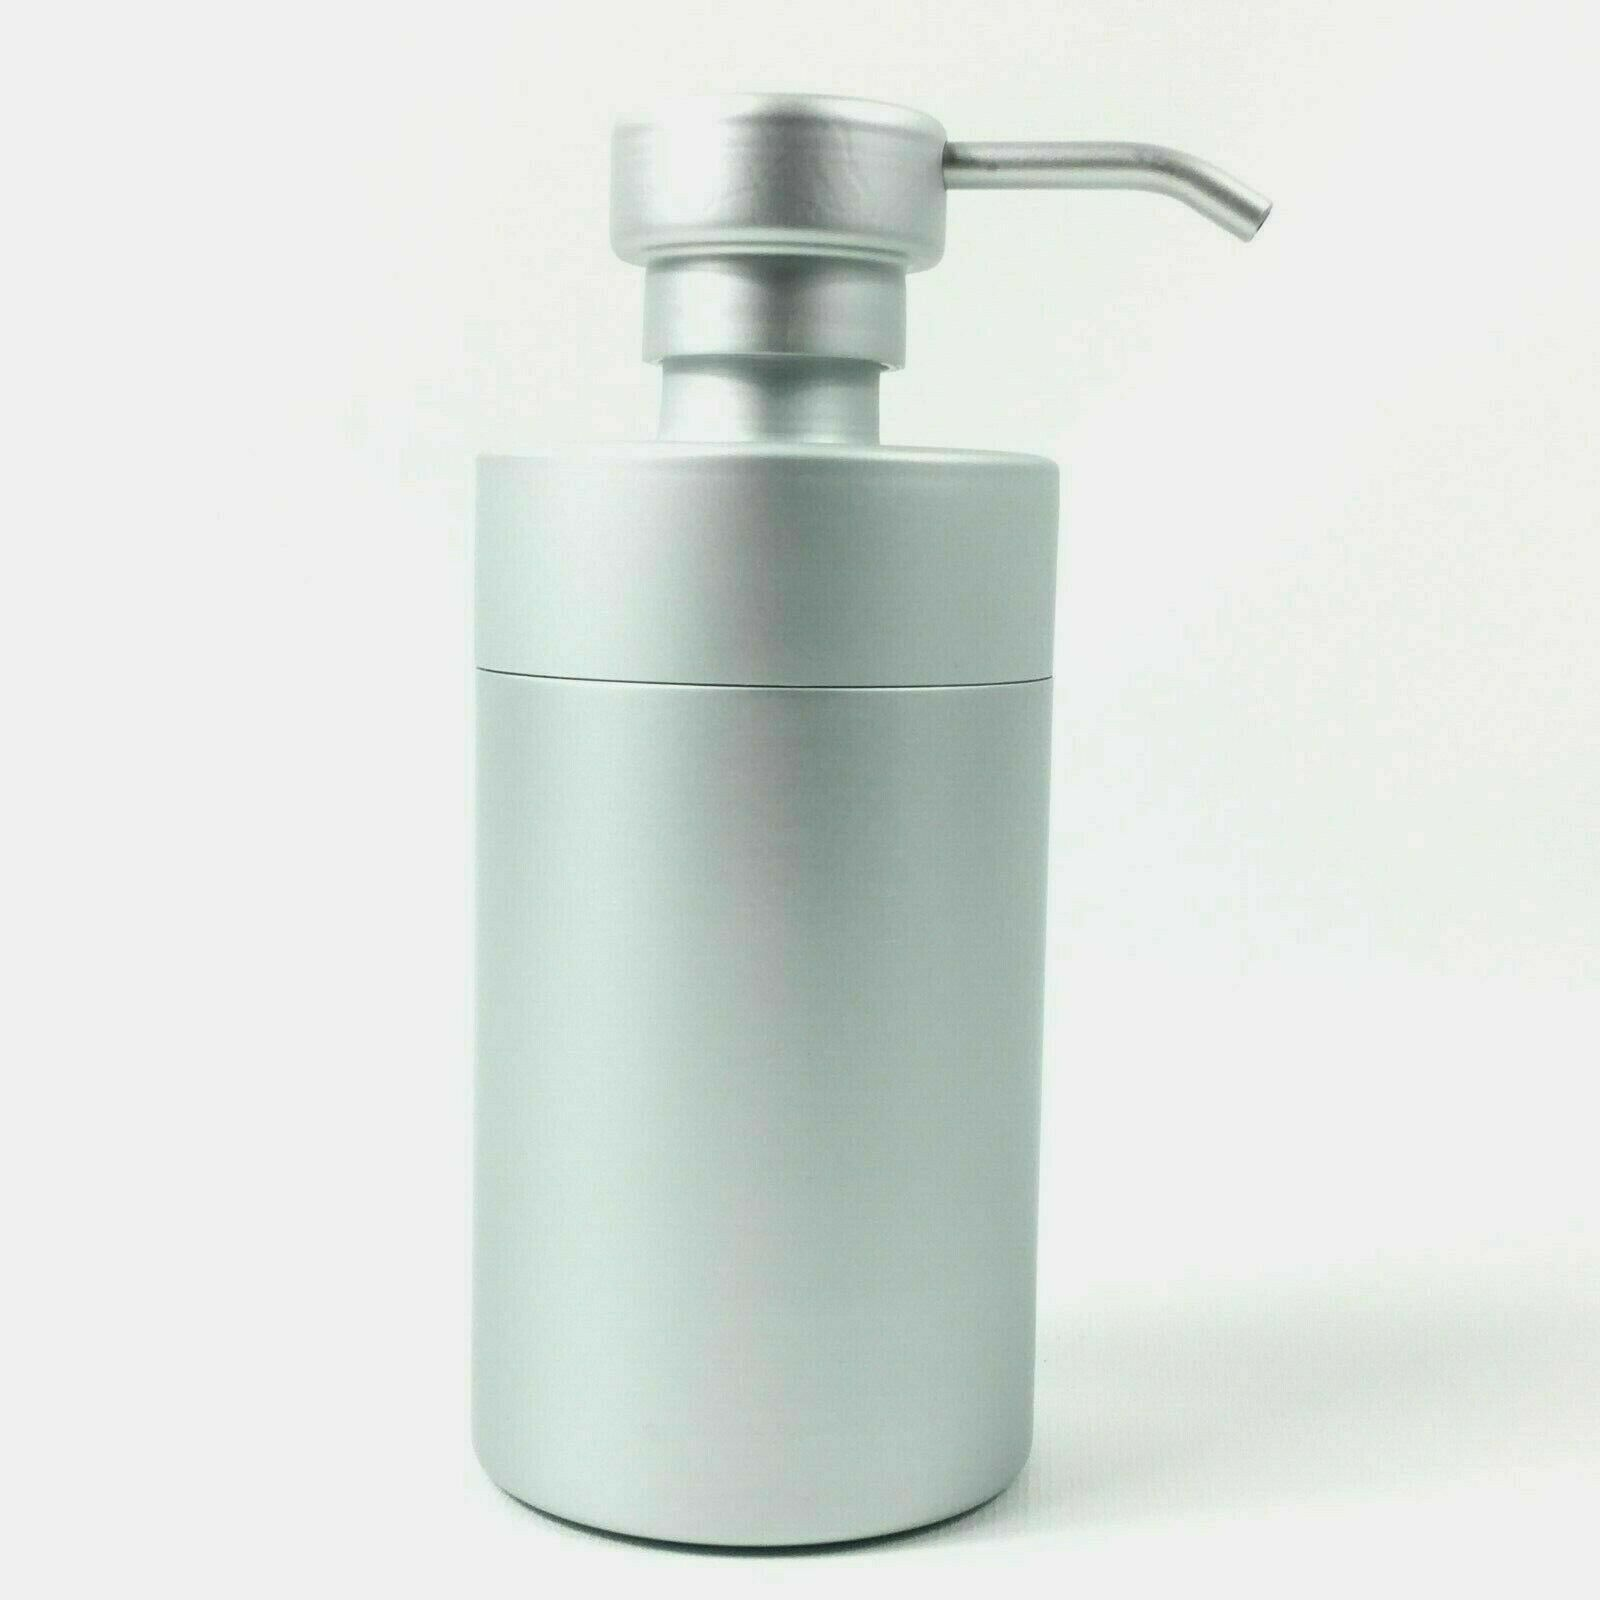 Made By Design Lotion Pump Silver Gray -- new with tags-- (store)